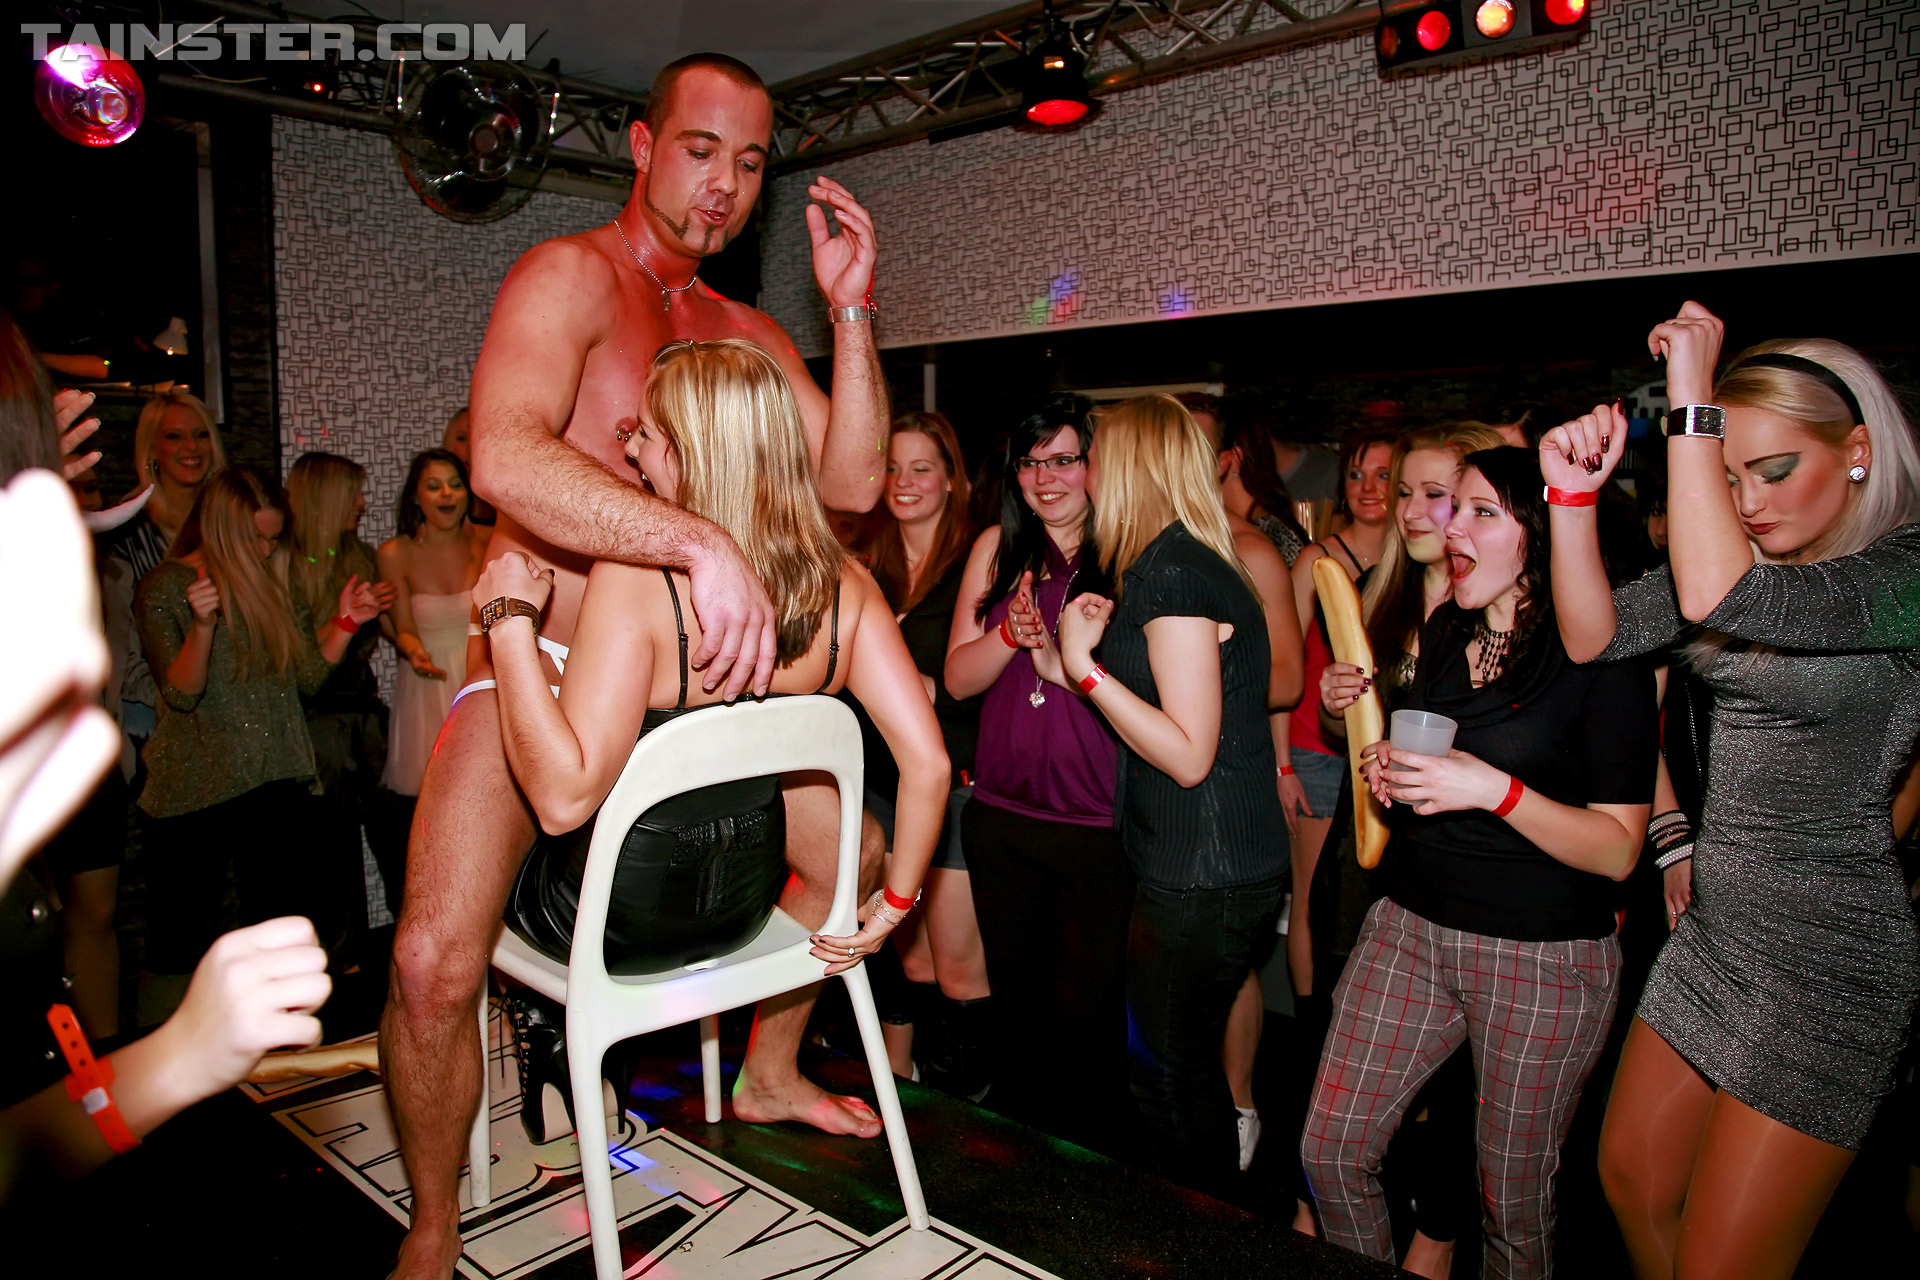 Girls at male stripper party